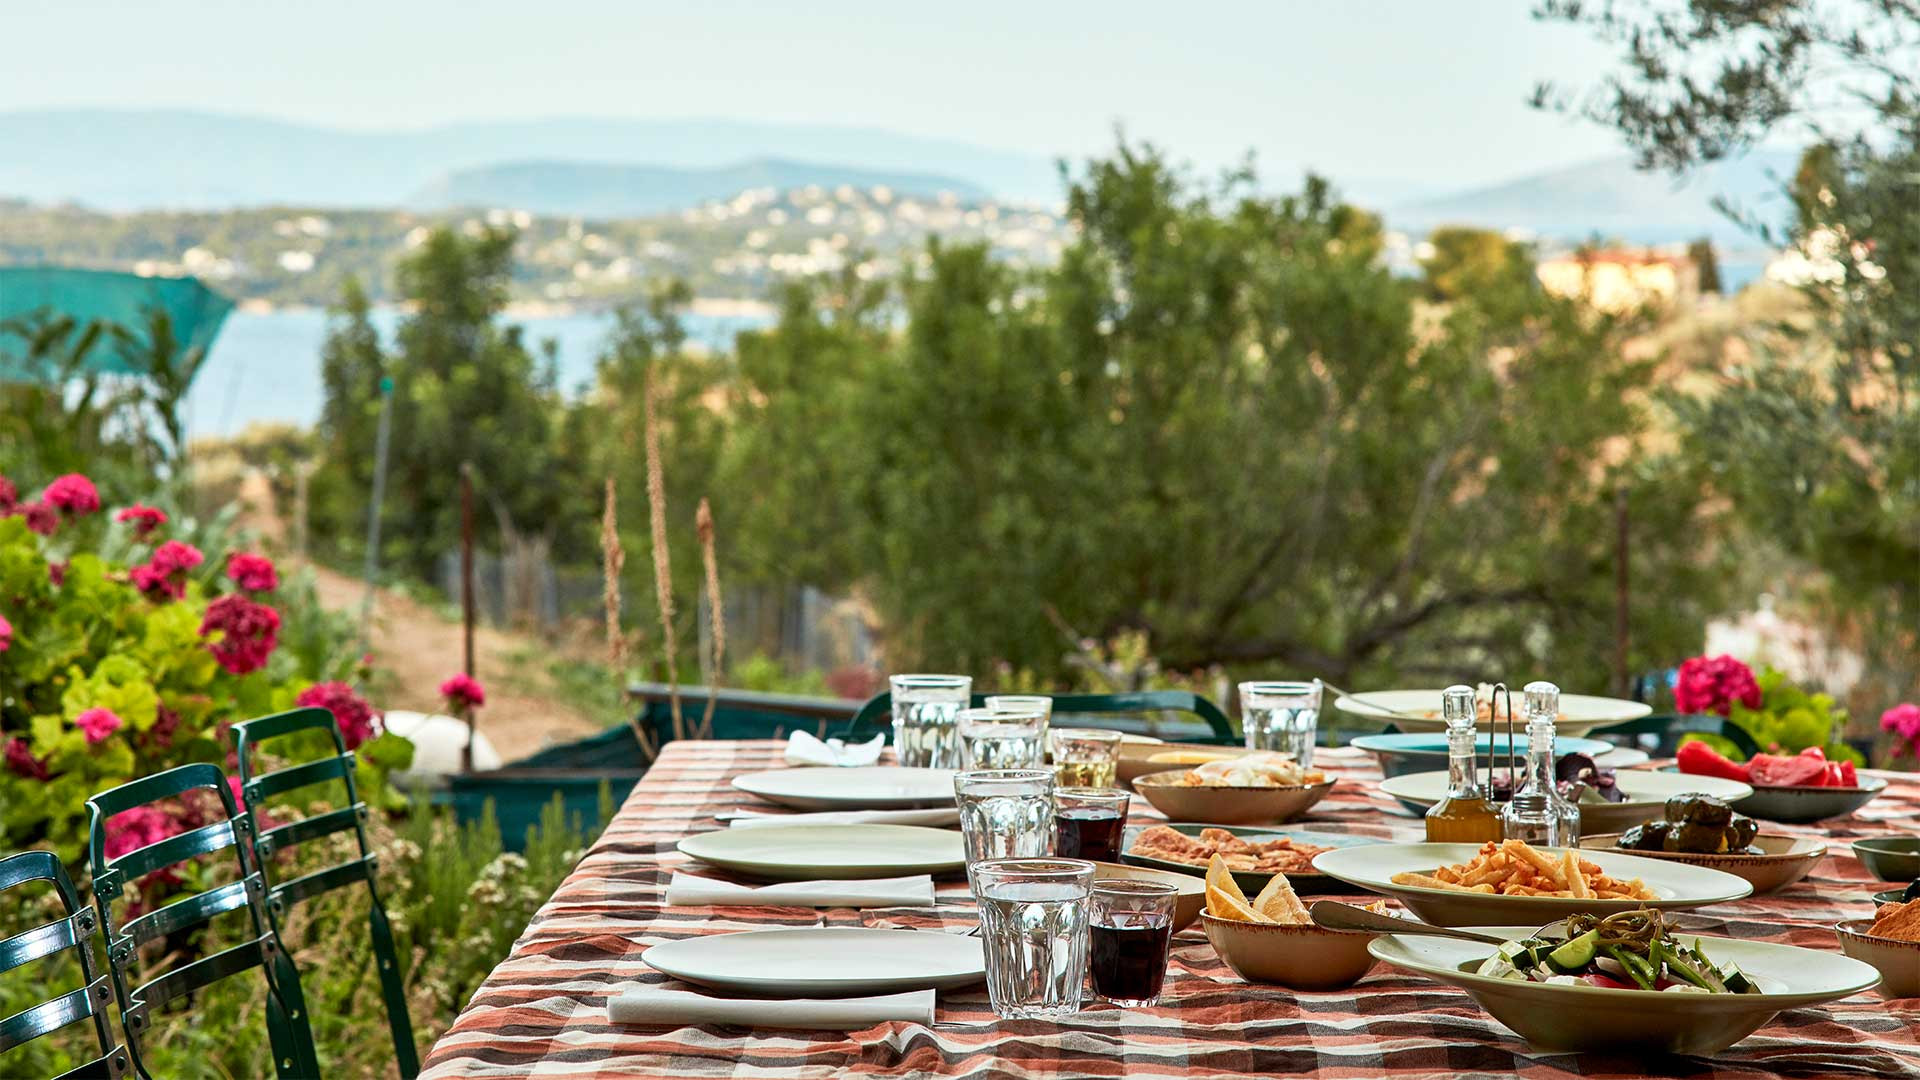 The Poseidonian Grand Hotel, Spetses island, Greece